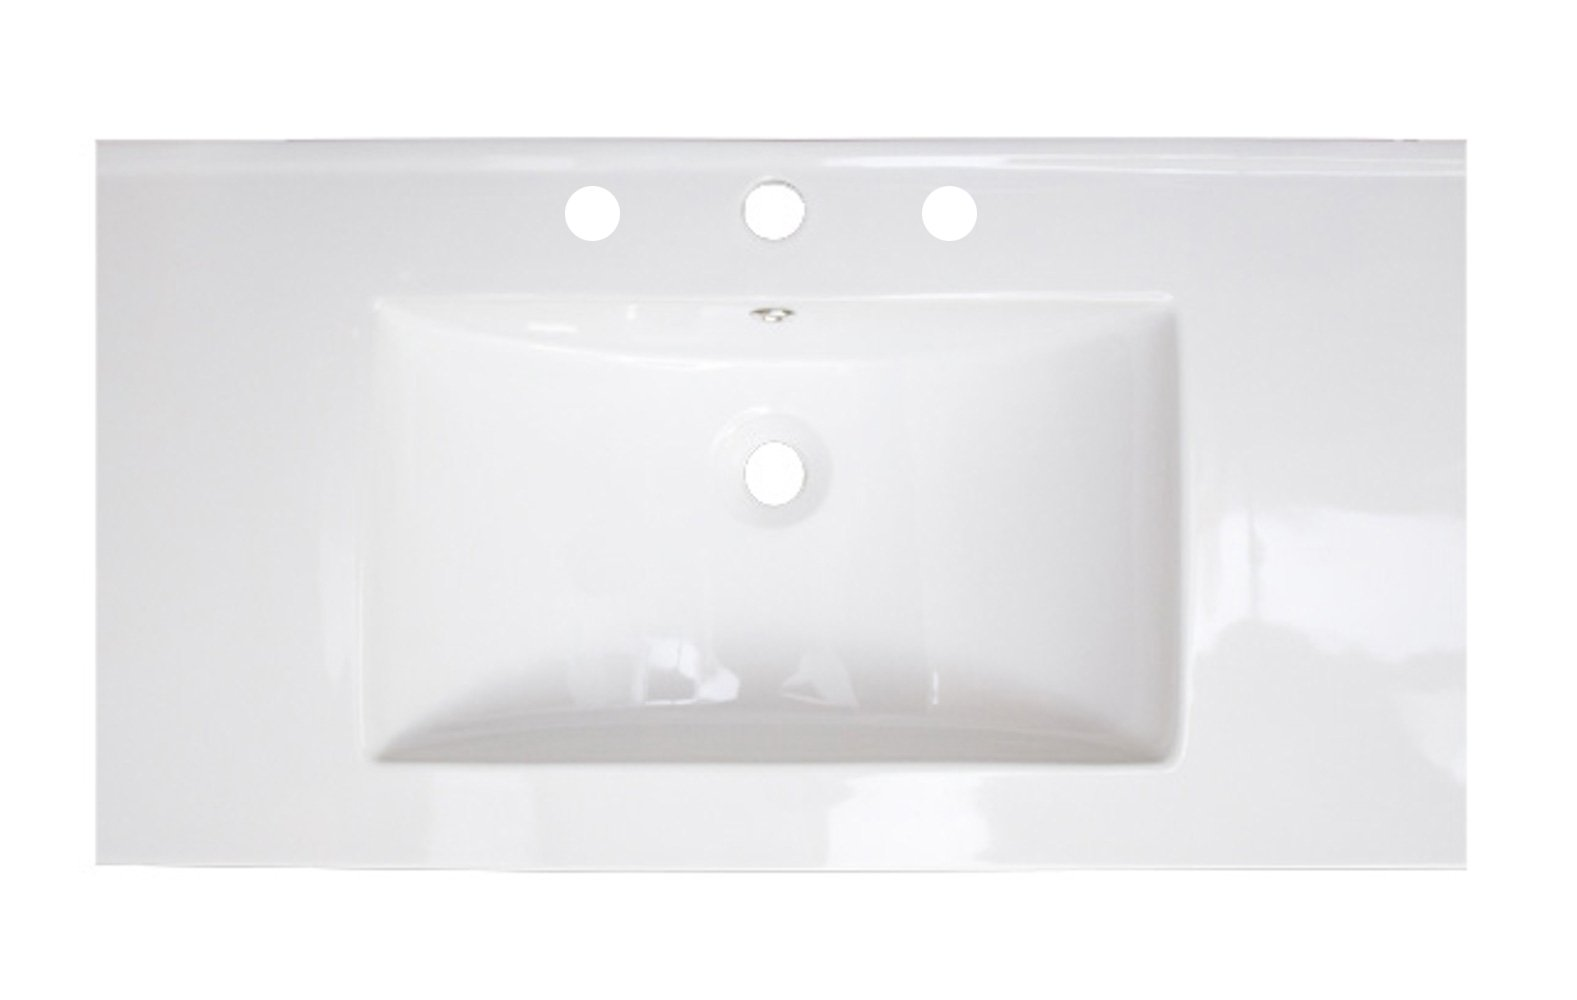 American Imaginations D Ceramic Top For 4-in. o.c. Faucet, 37-Inch x 22-Inch, White by American Imaginations